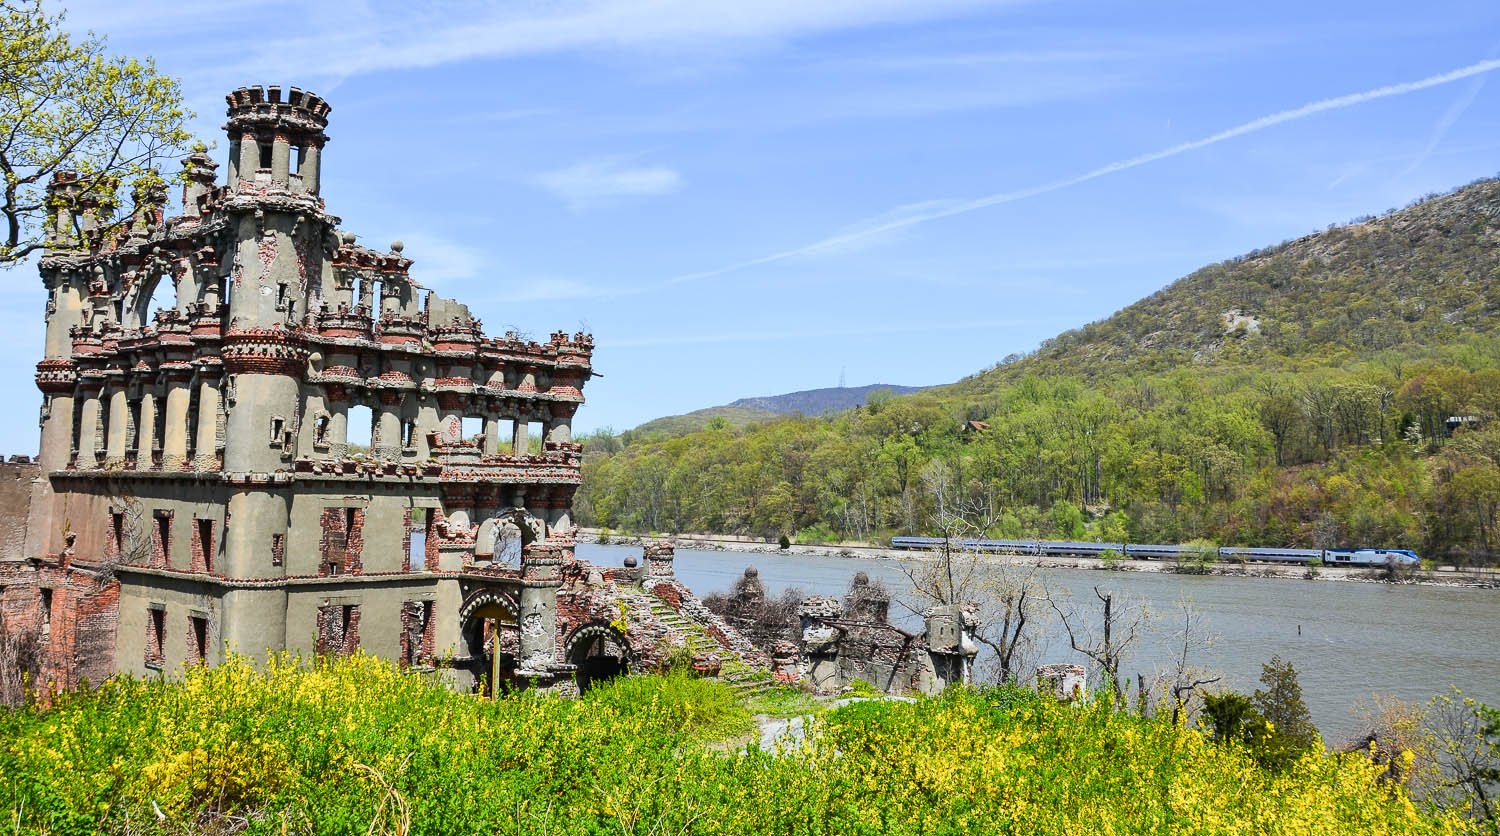 Bannerman-Castle-train-in-background.jpg